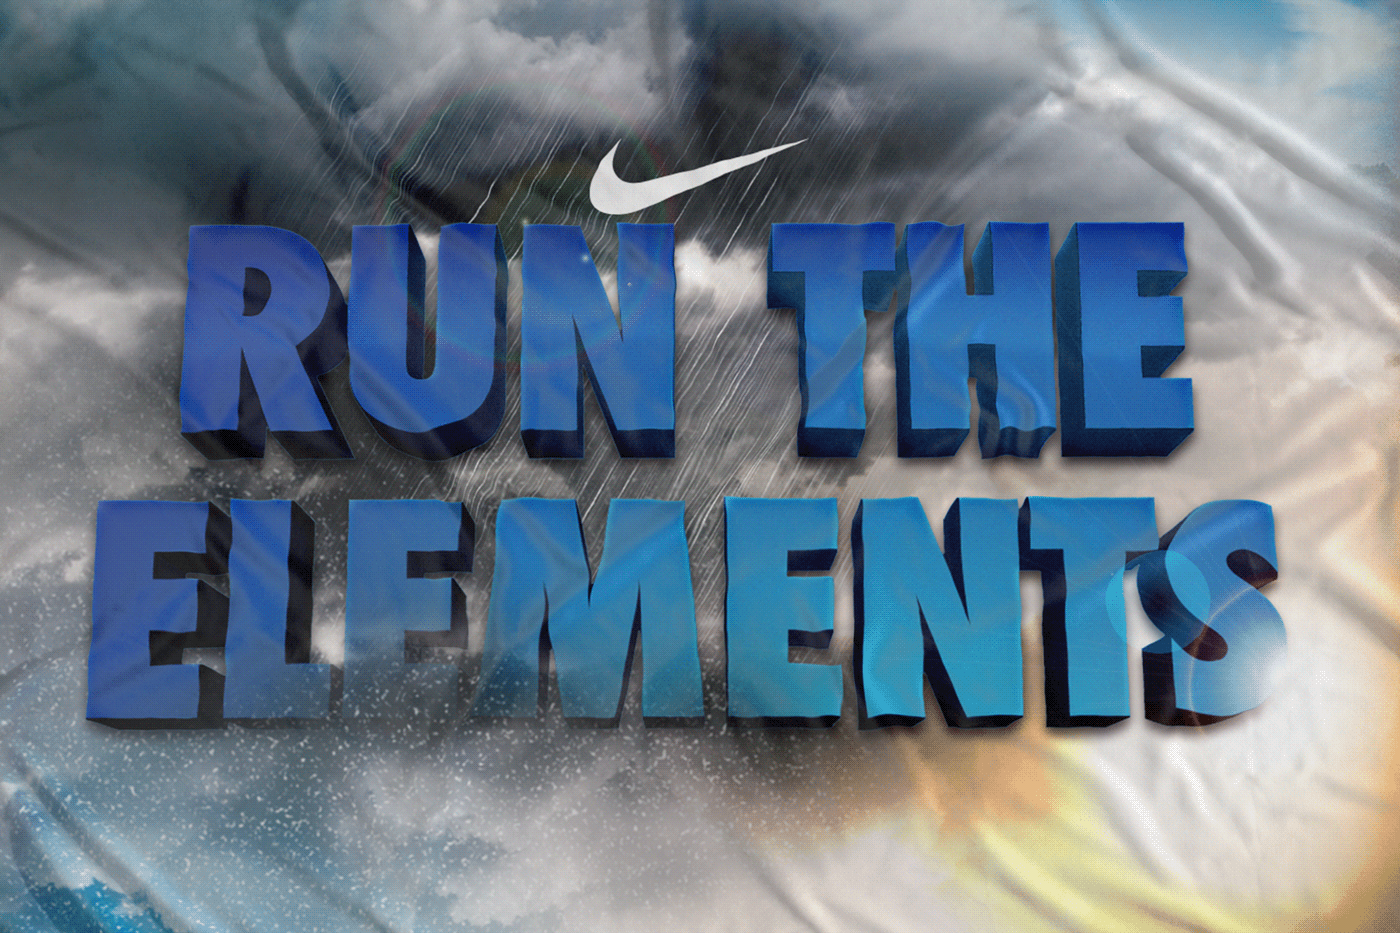 Run the elements